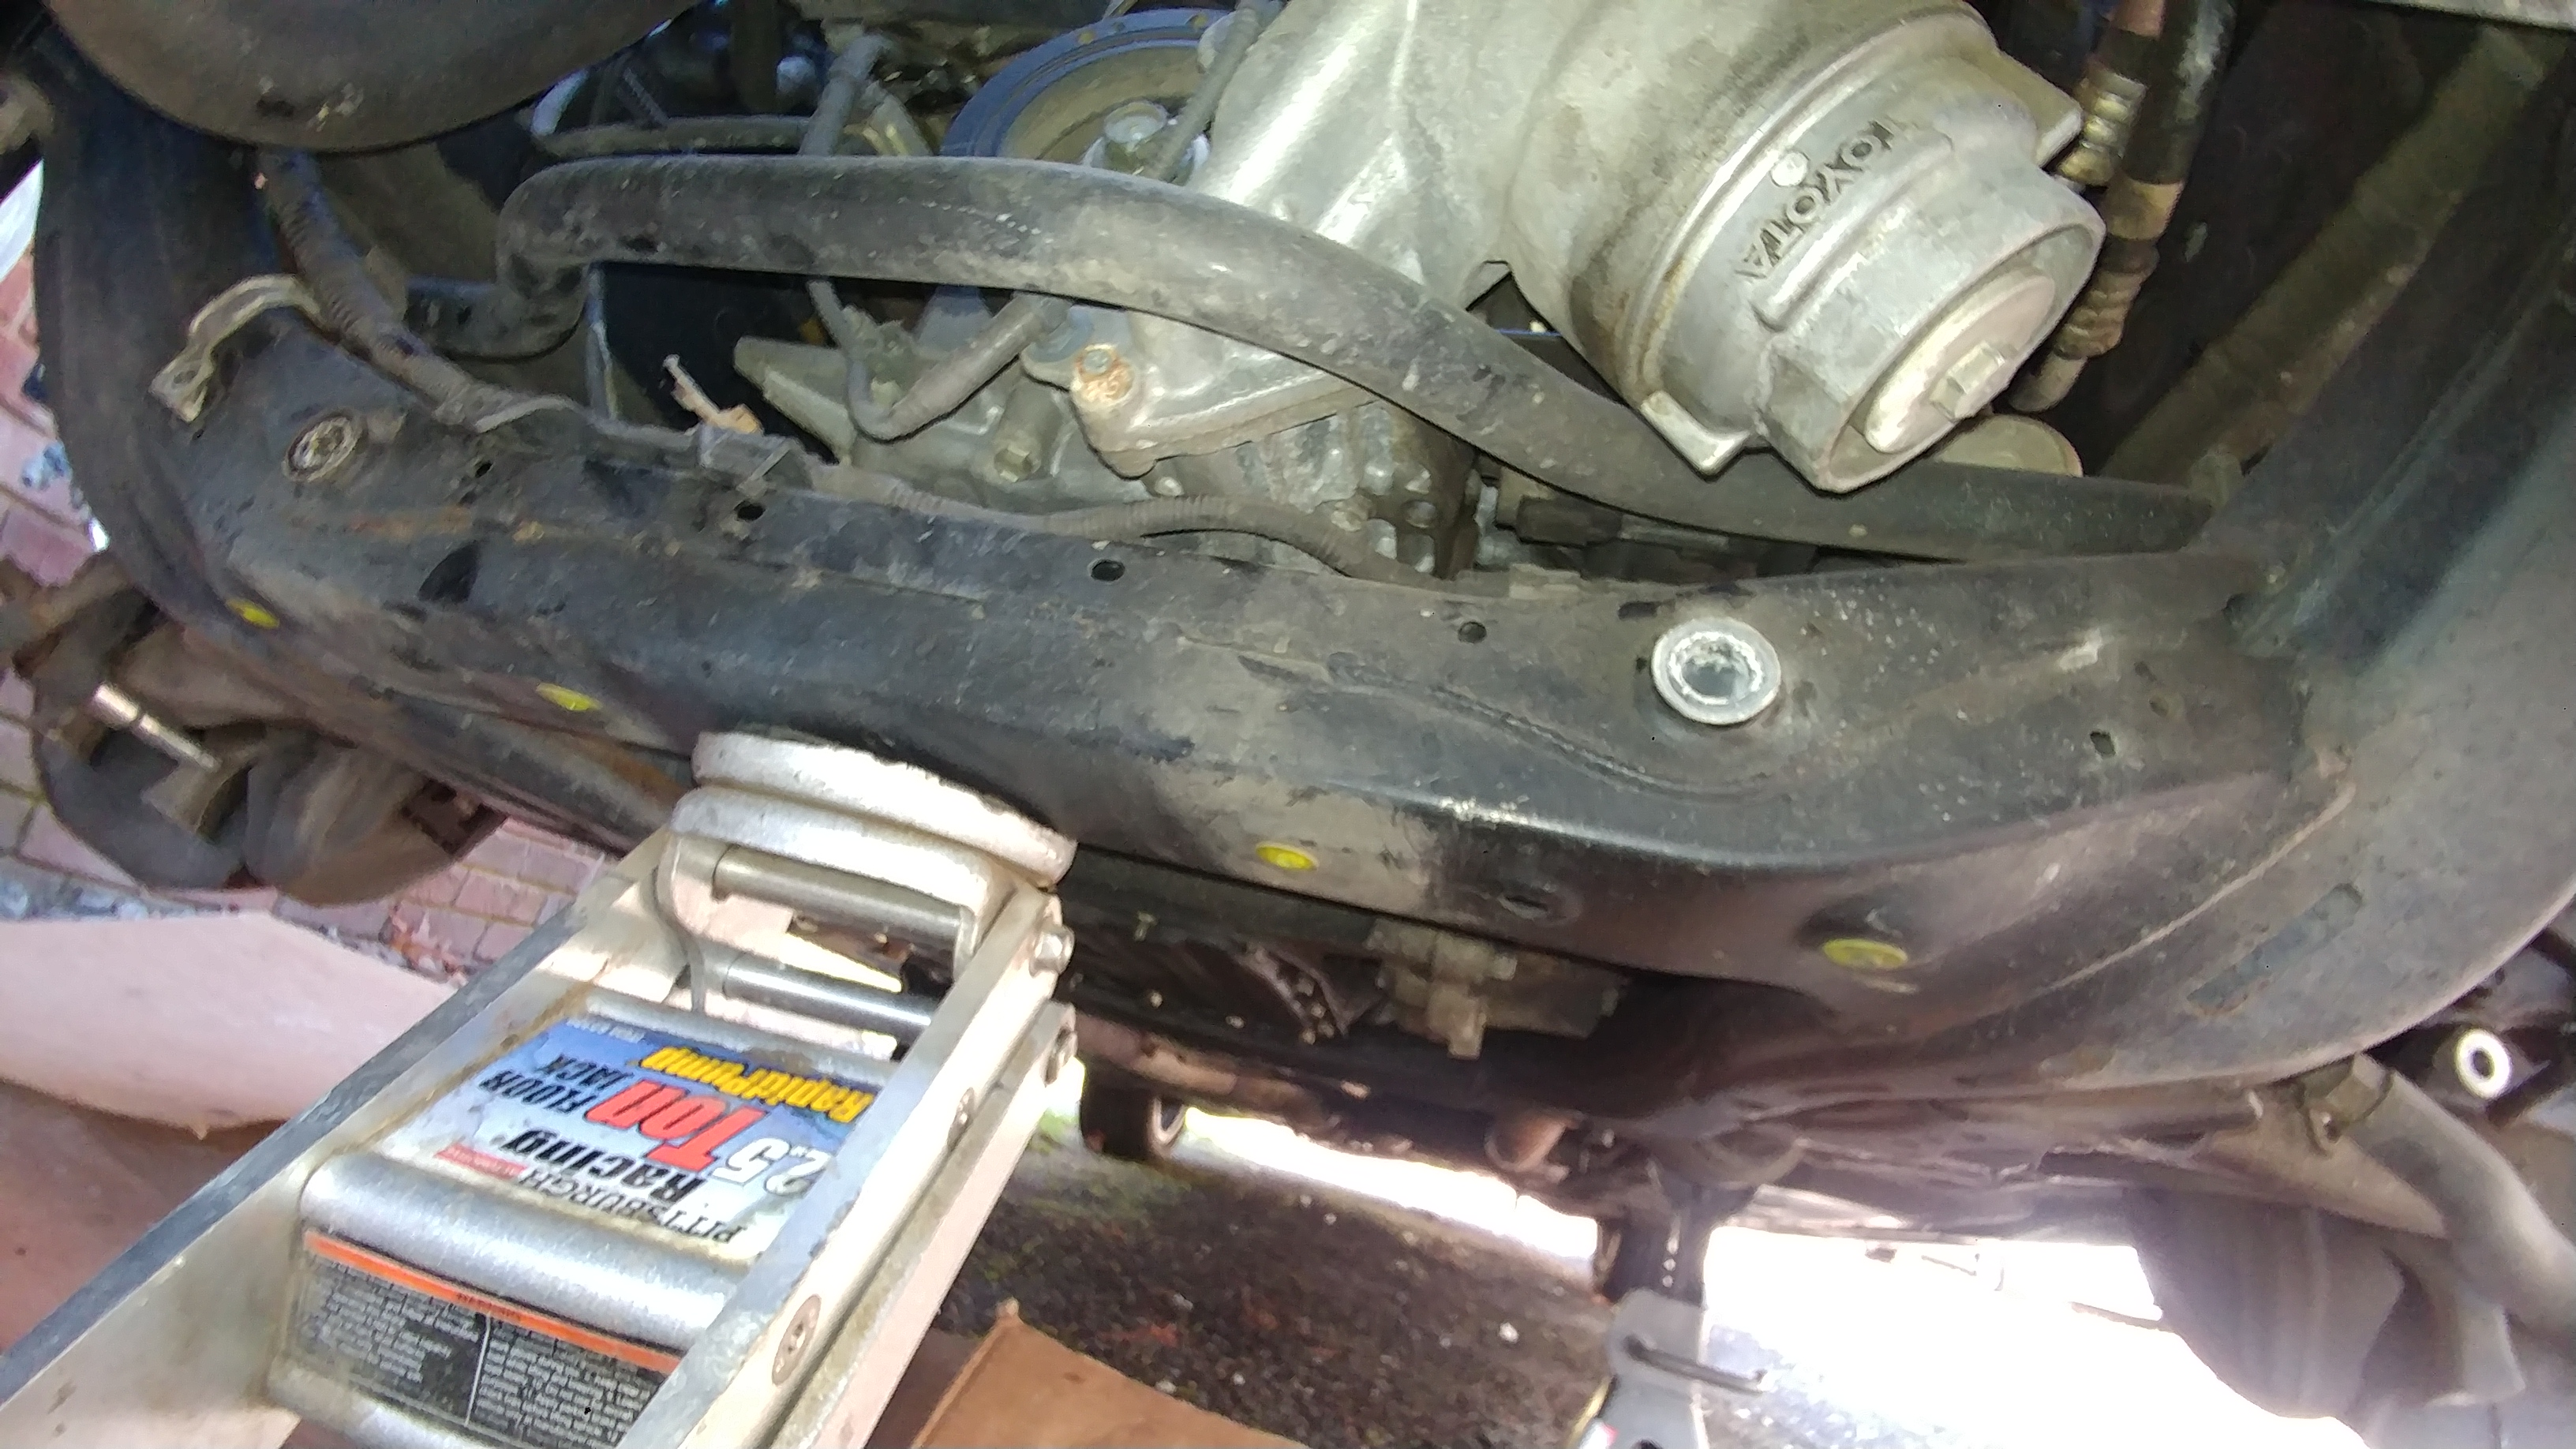 Front differential removal diy - 06 - 12 Lexus GS300 / GS350